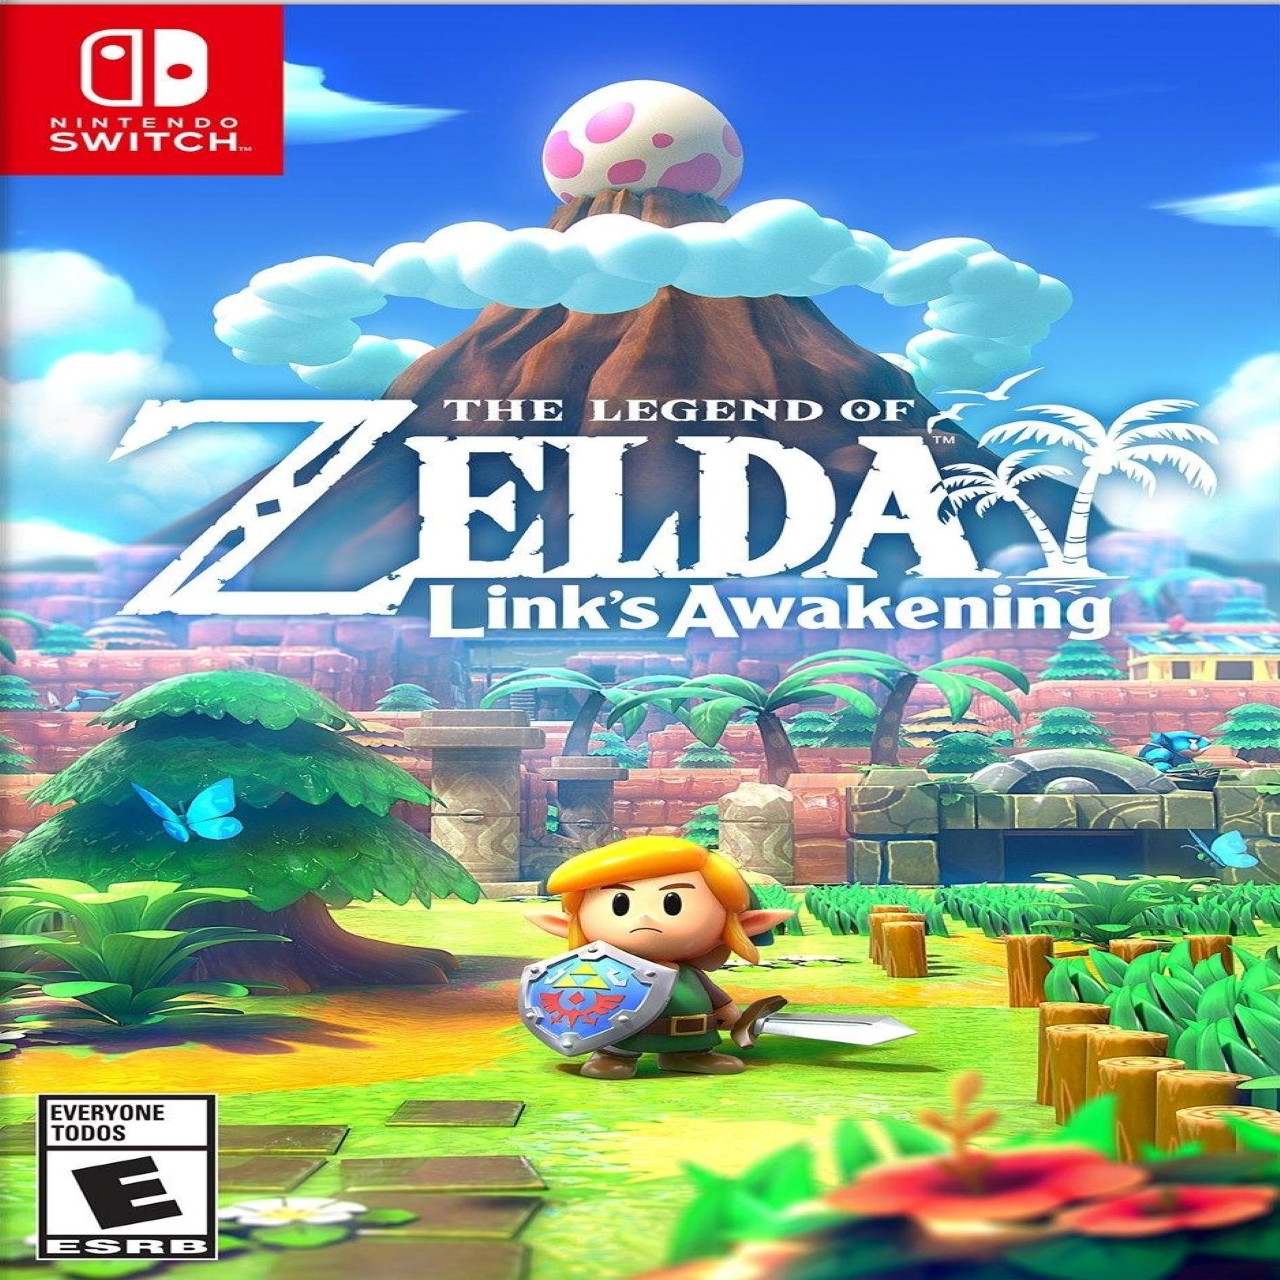 The Legend of Zelda: Link's Awakening Nintendo Switch RUS